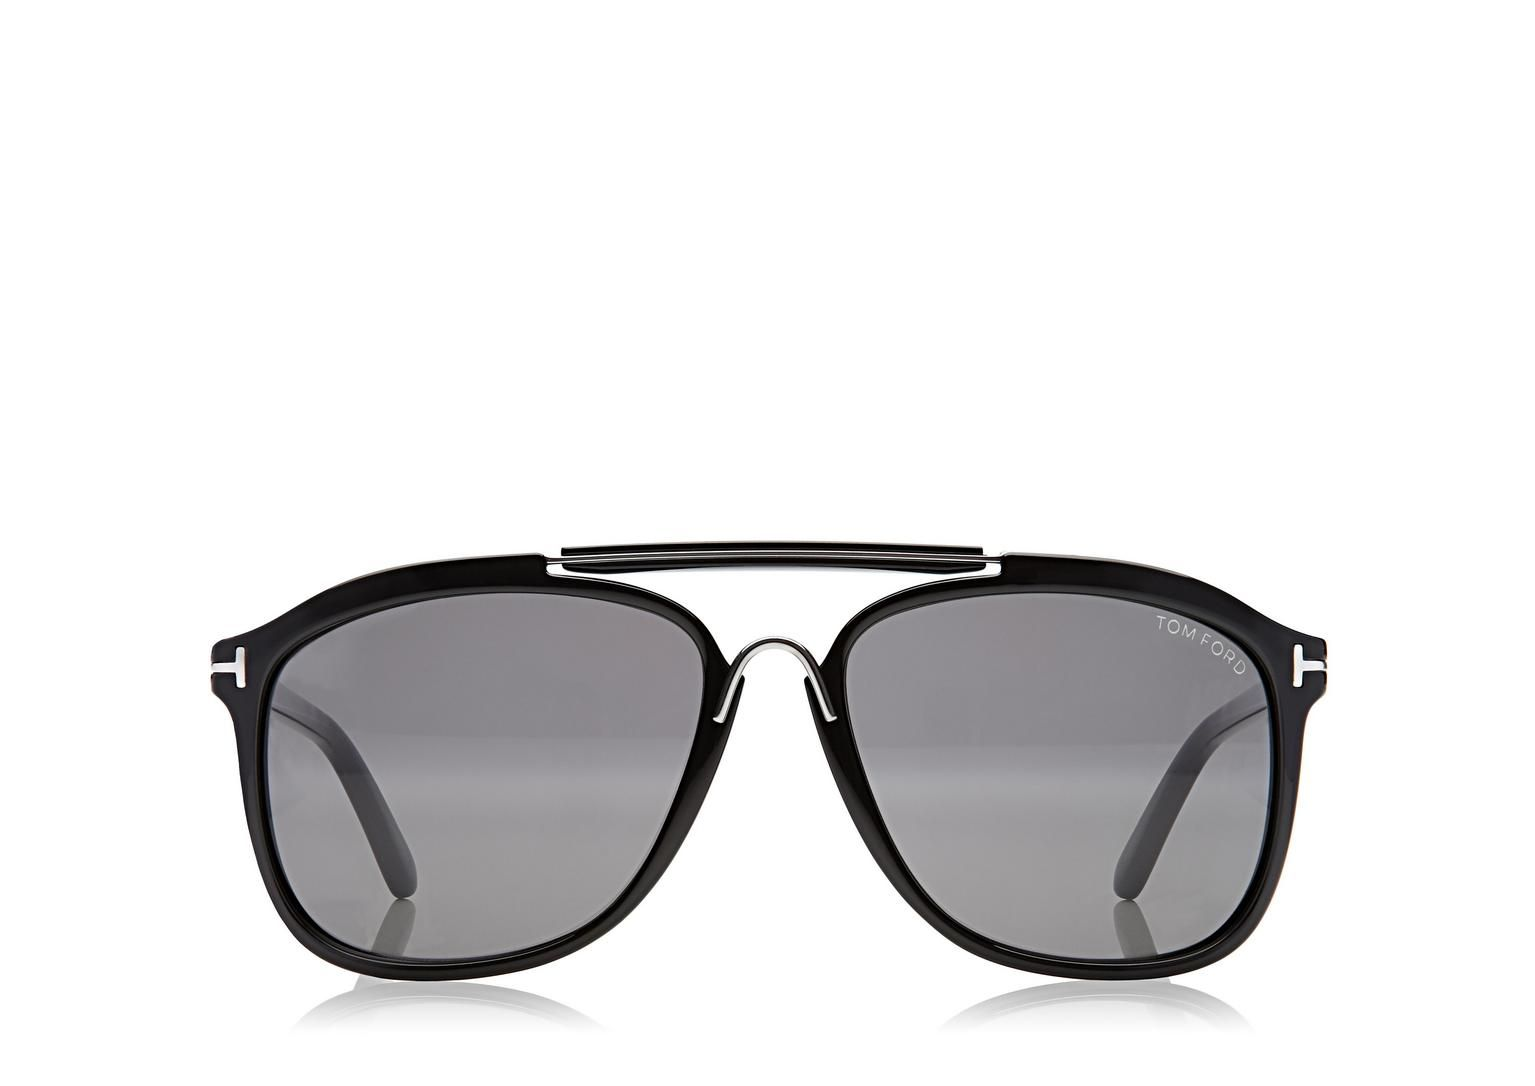 cade aviator sunglasses shop tom ford online store. Black Bedroom Furniture Sets. Home Design Ideas